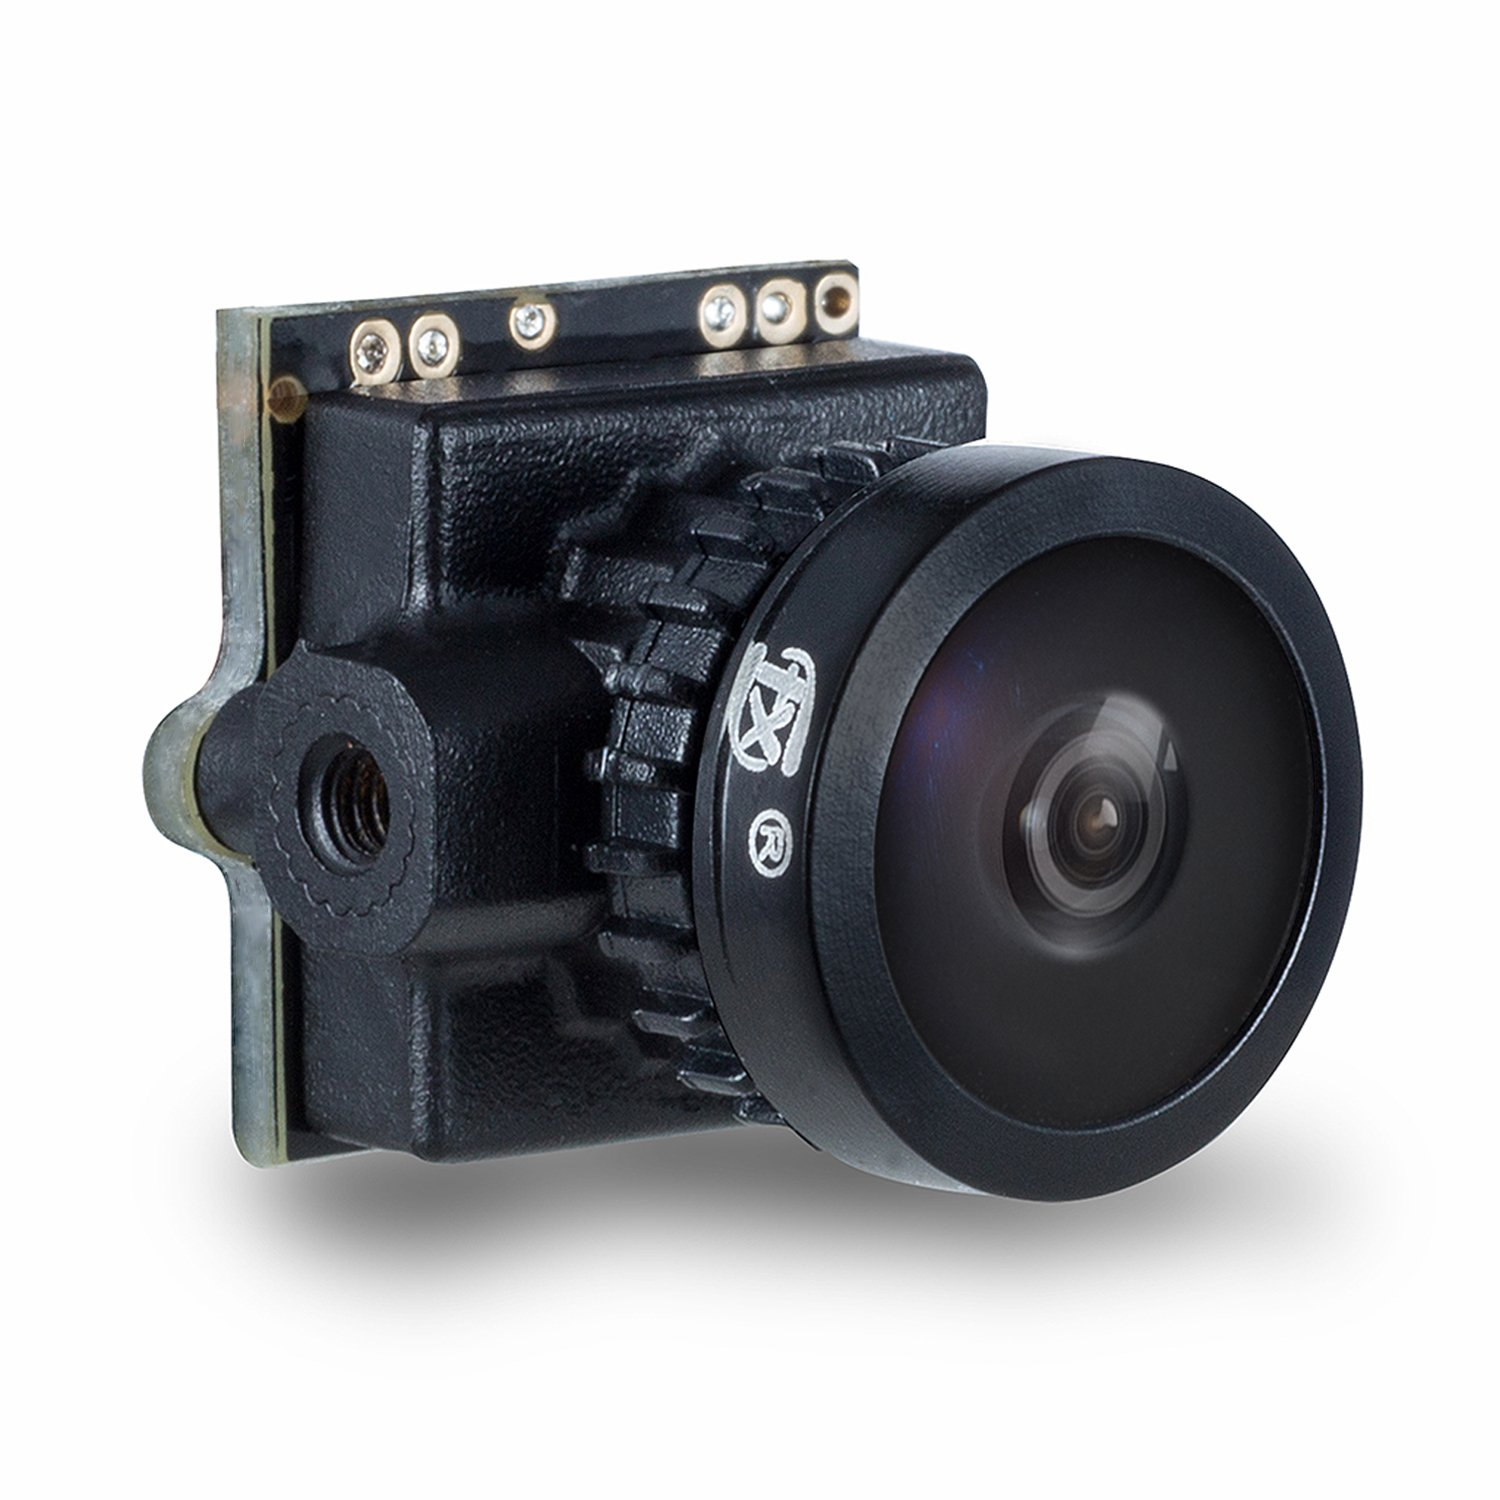 "FXT 800TVL Mini FPV camera PAL/NTSC Integrated OSD 1/3"" CMOS CAM For Drone Quadcopter"